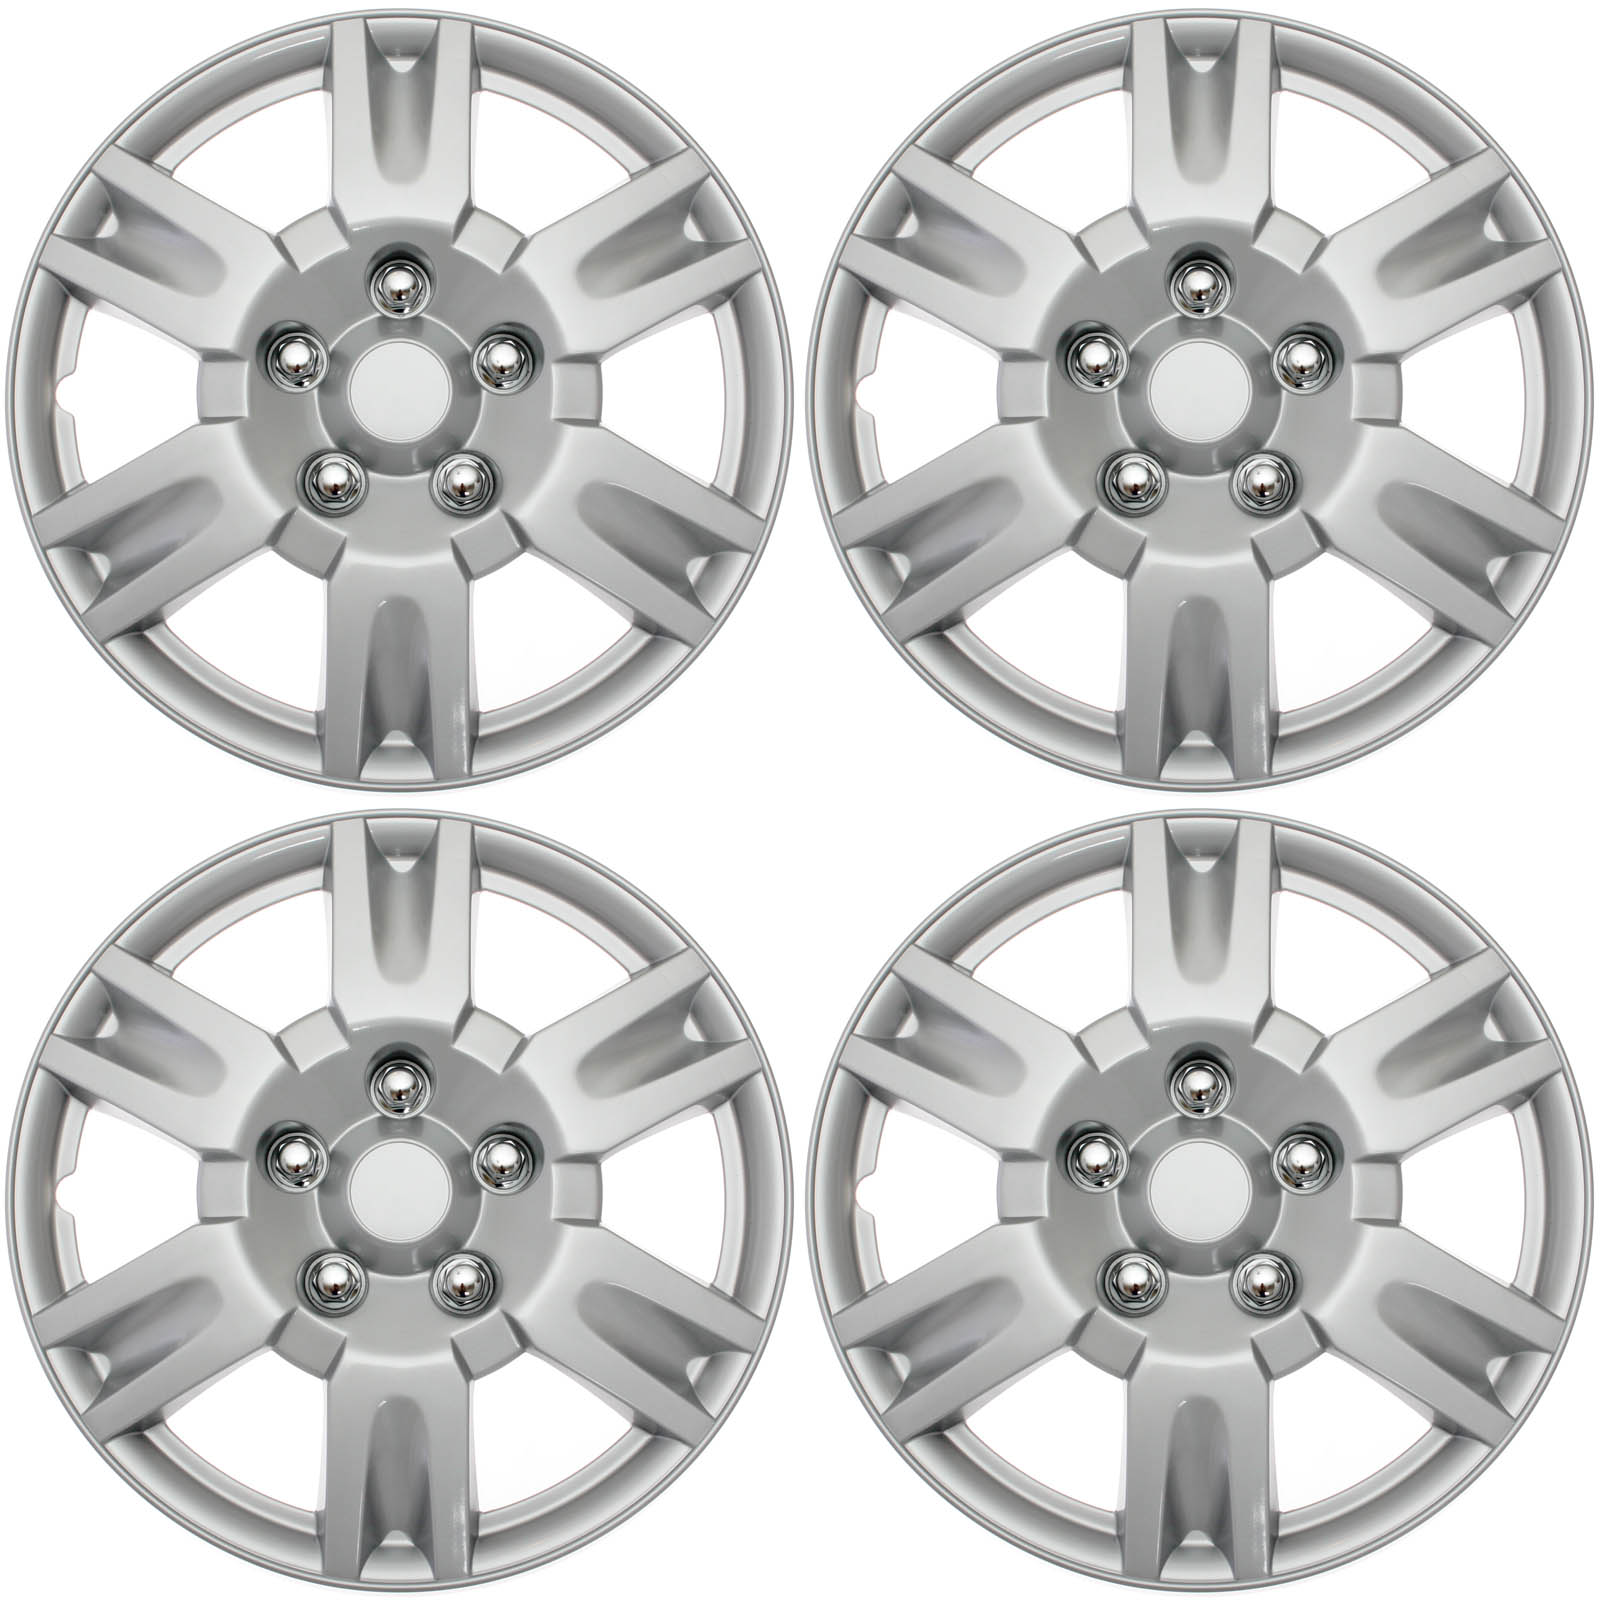 """Cover Trend (Set of 4) Silver Lacquer 15"""" Inch Aftermarket Nissan Altima Replica Hubcaps Wheel Covers"""